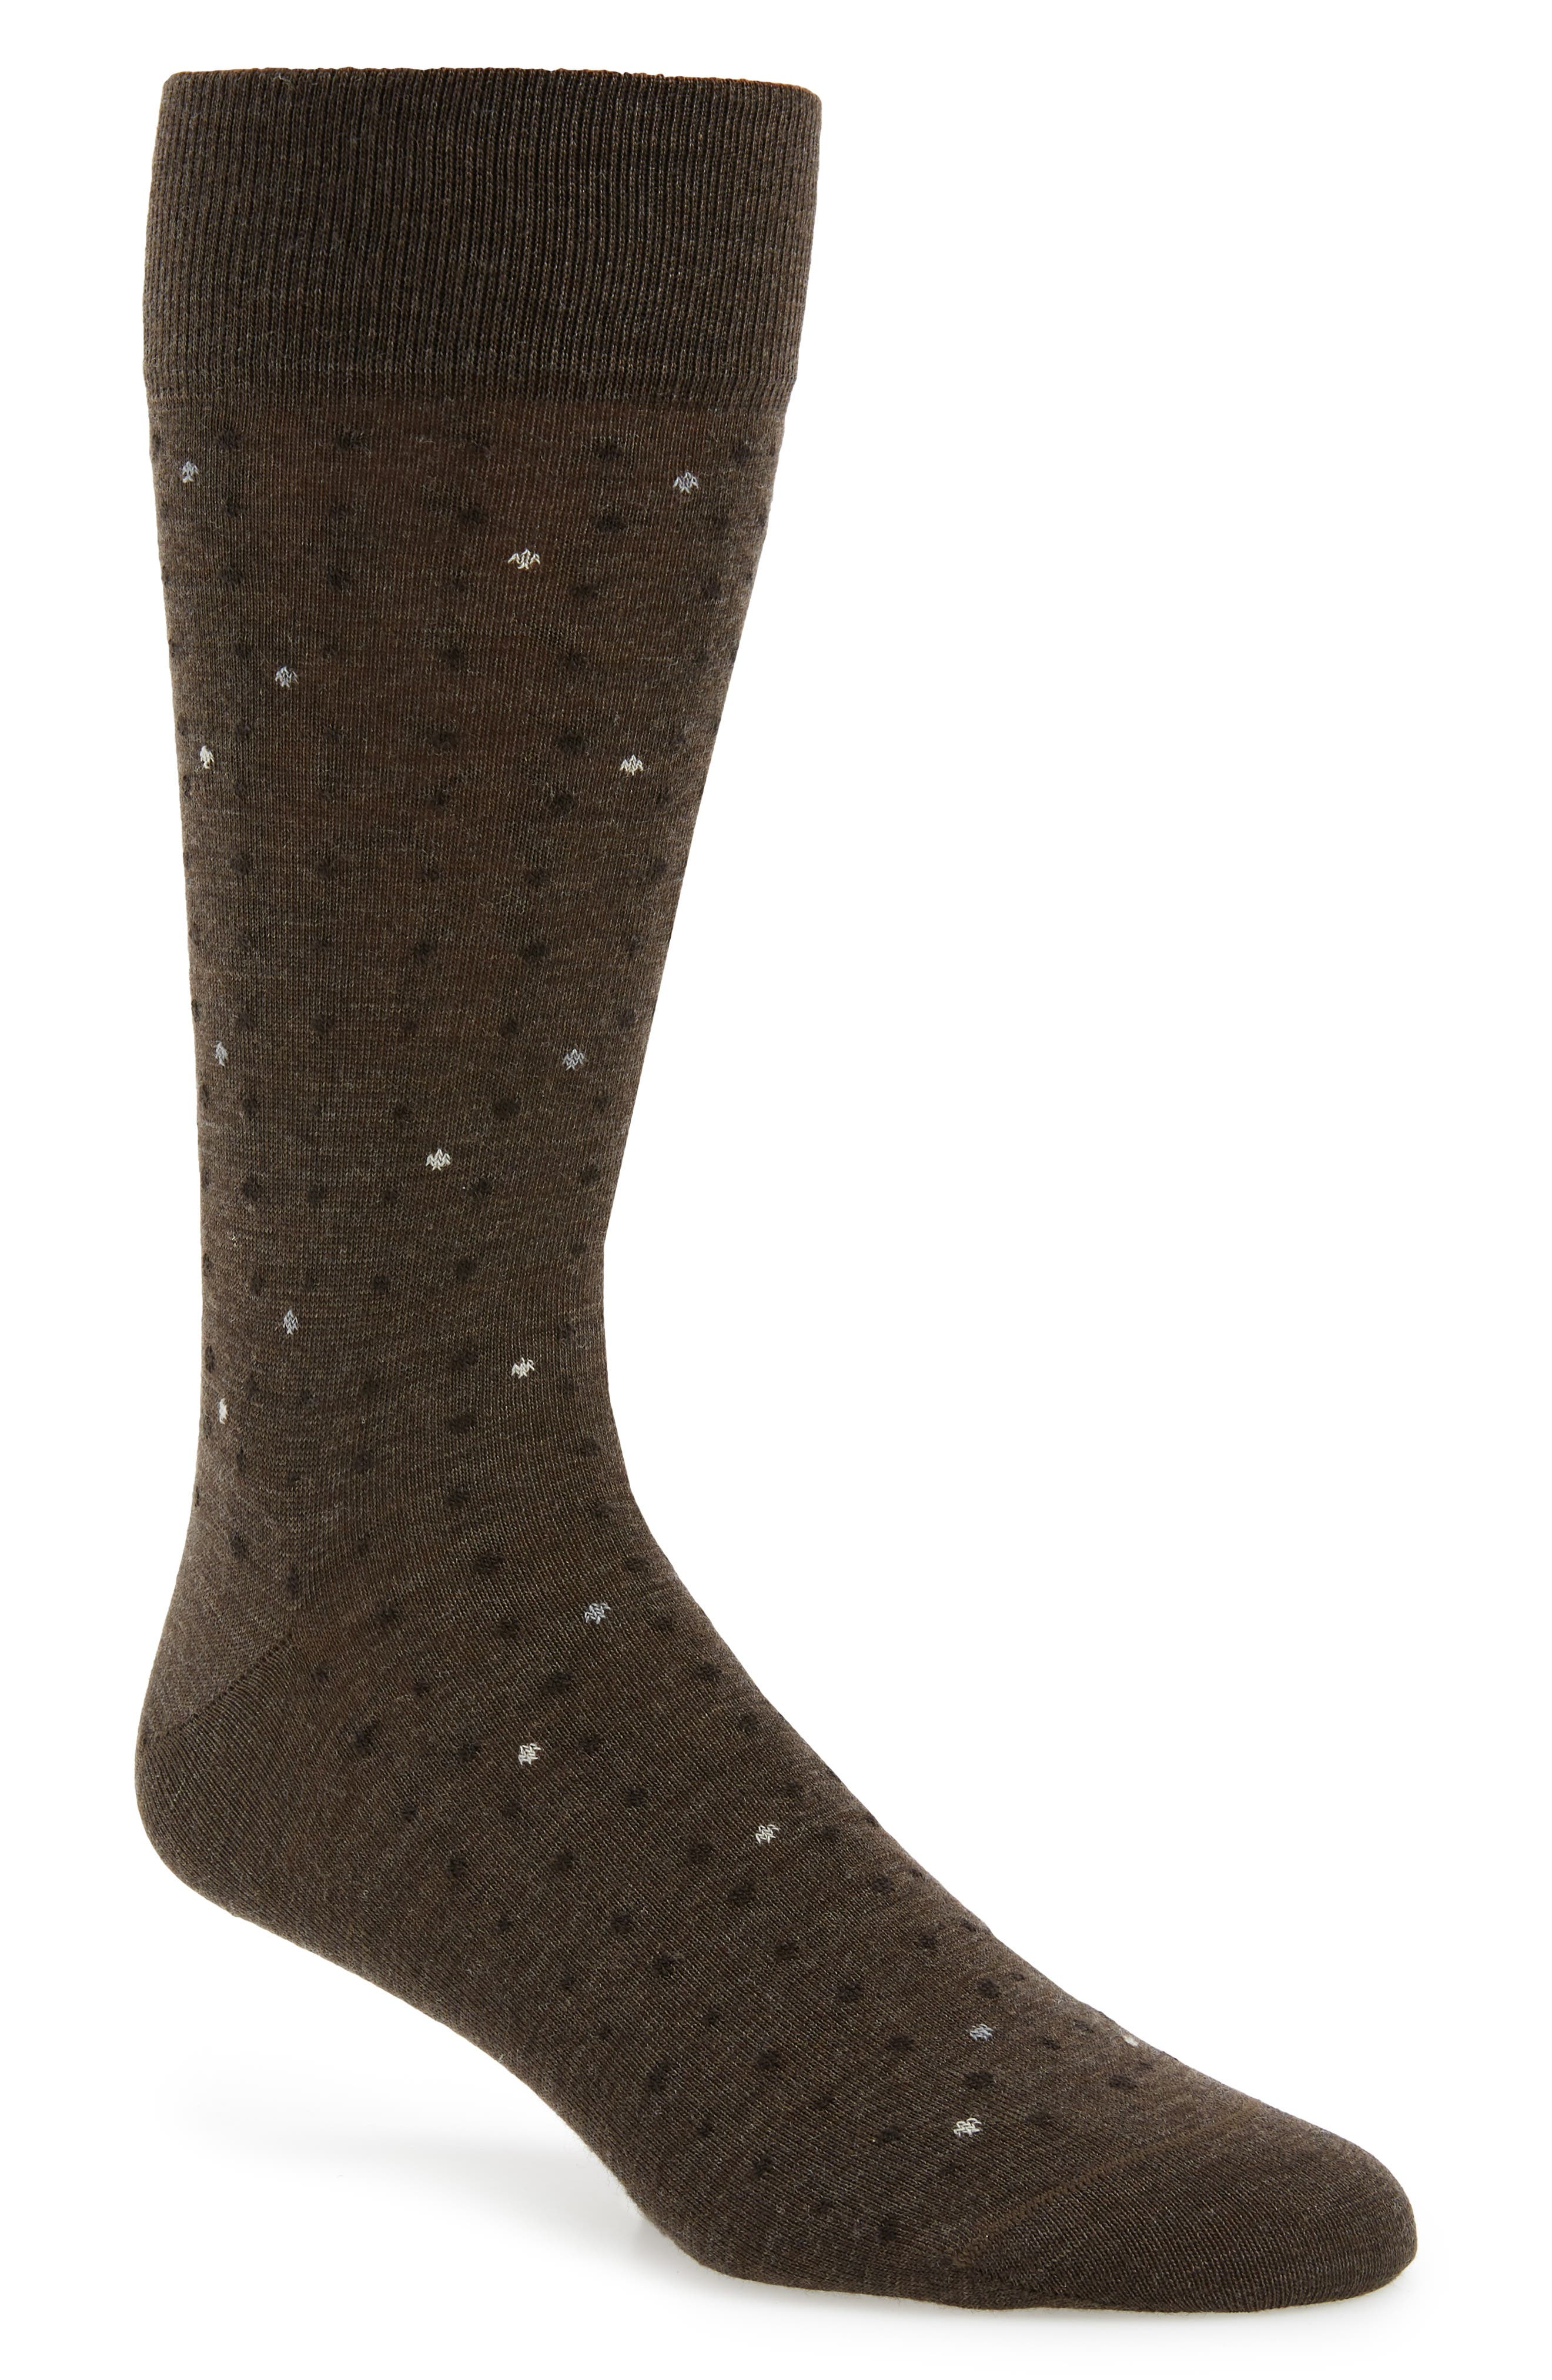 Scattered Points Socks,                             Main thumbnail 1, color,                             210